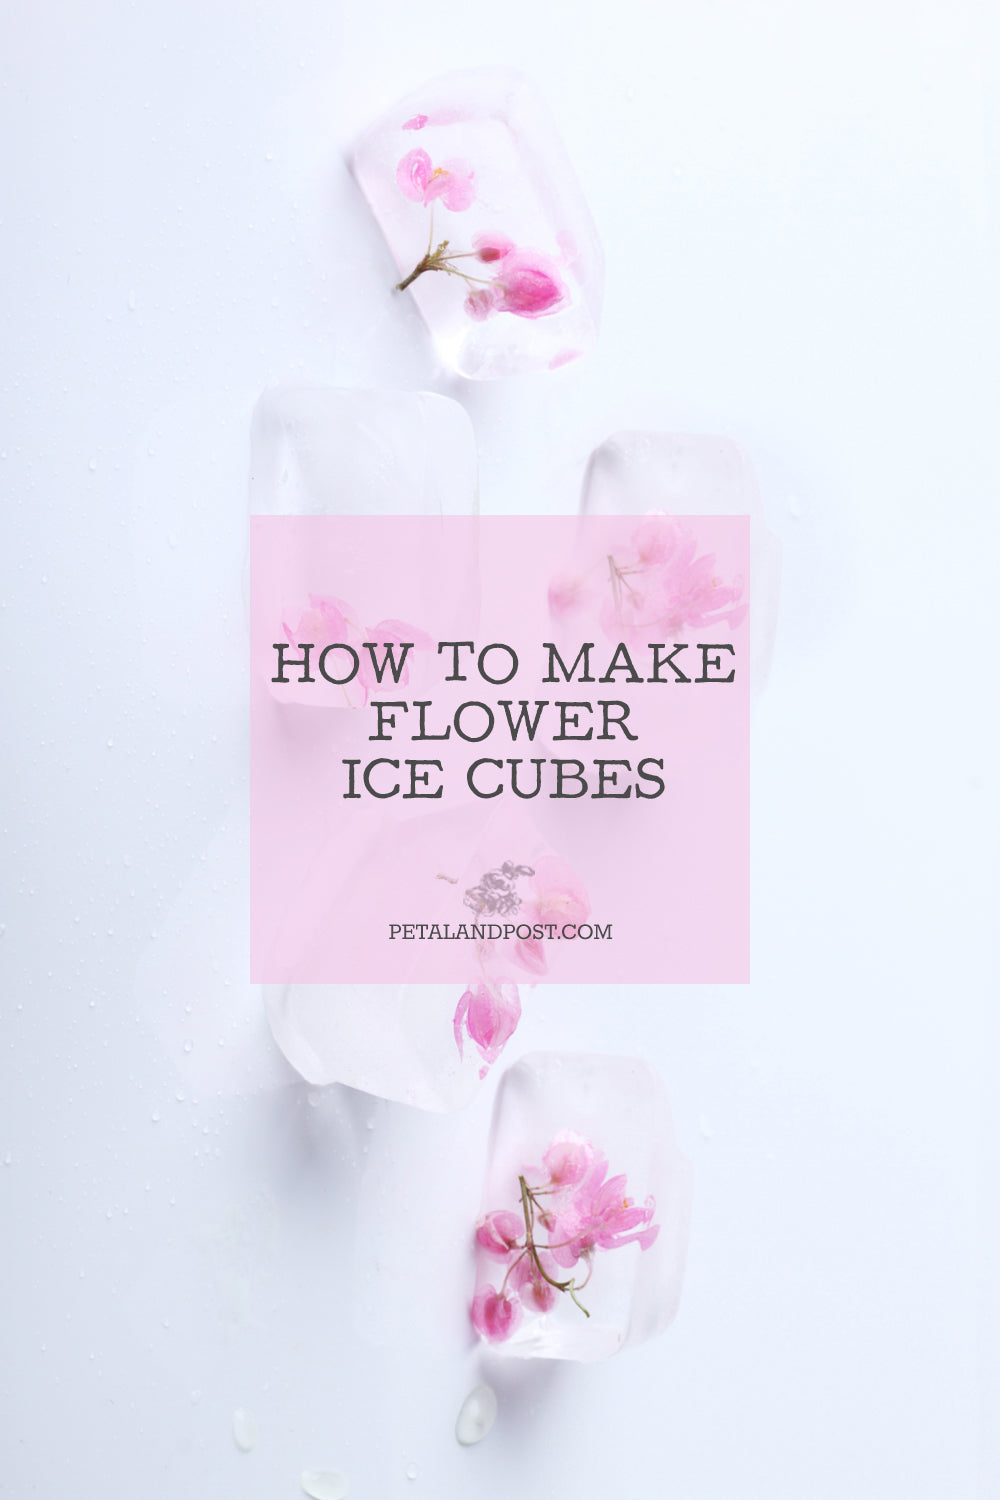 How to make floral ice cubes.